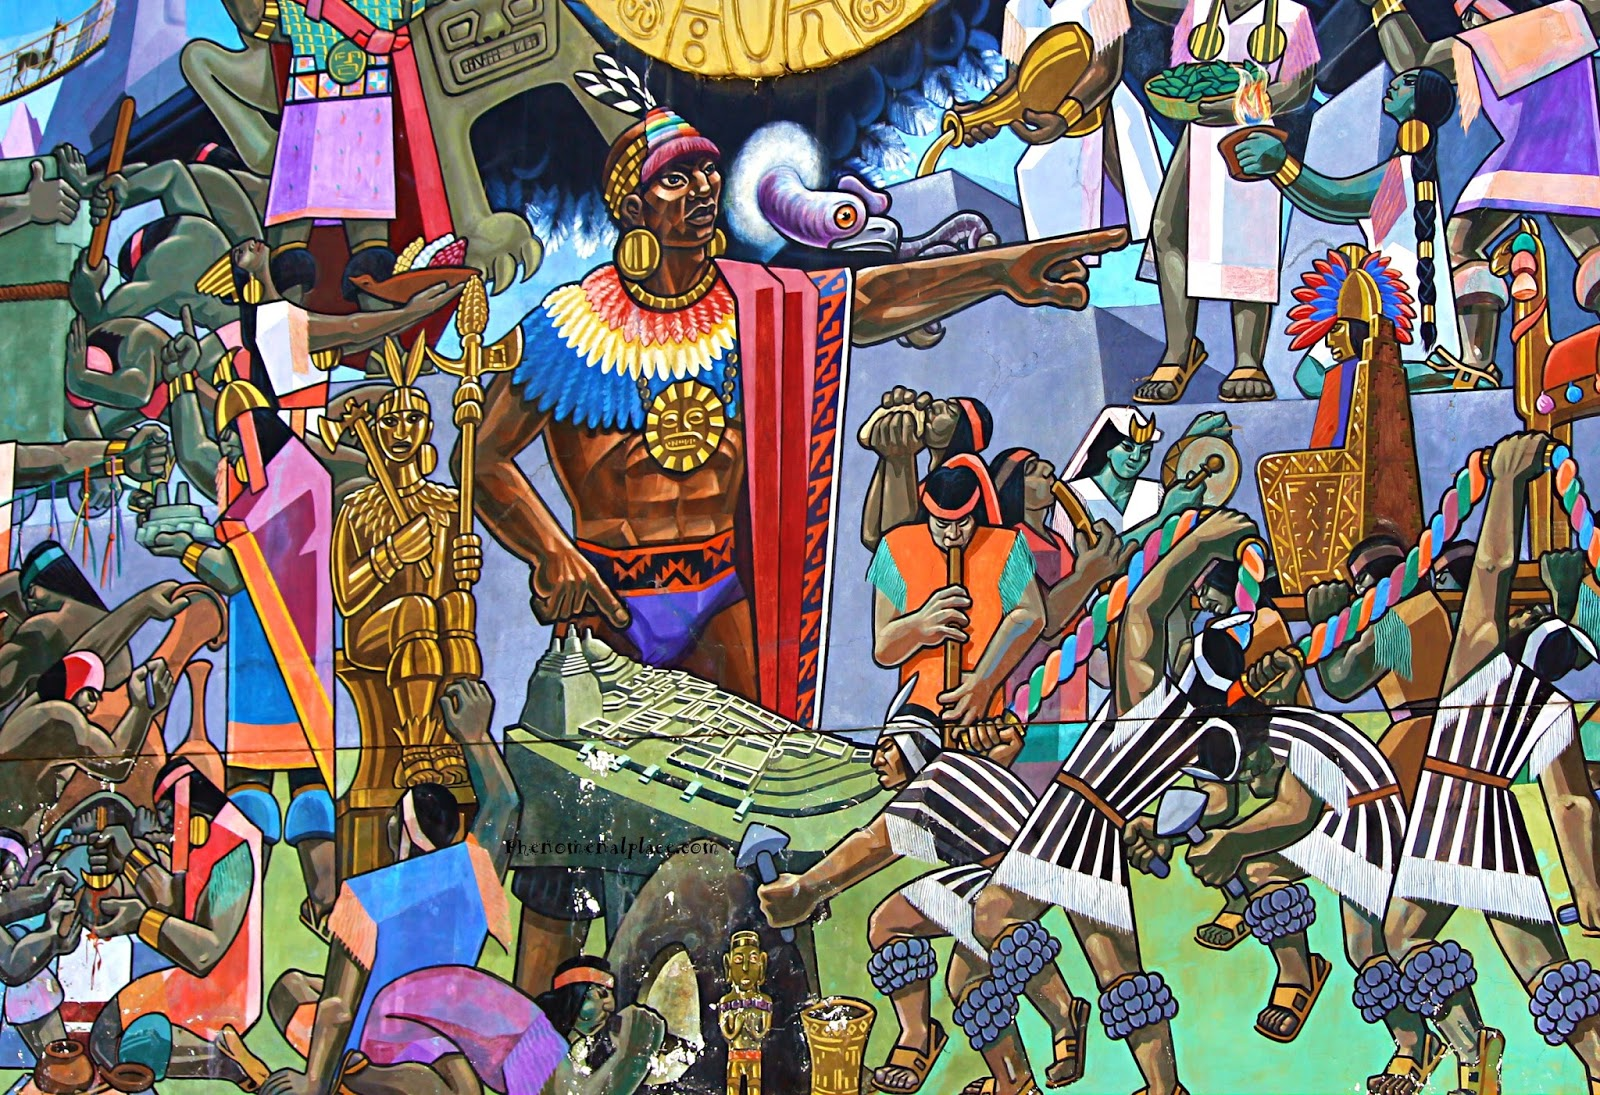 Psychedelic Wall Murals Cusco Mural By Juan Bravo Shows Amazing History Of Peru